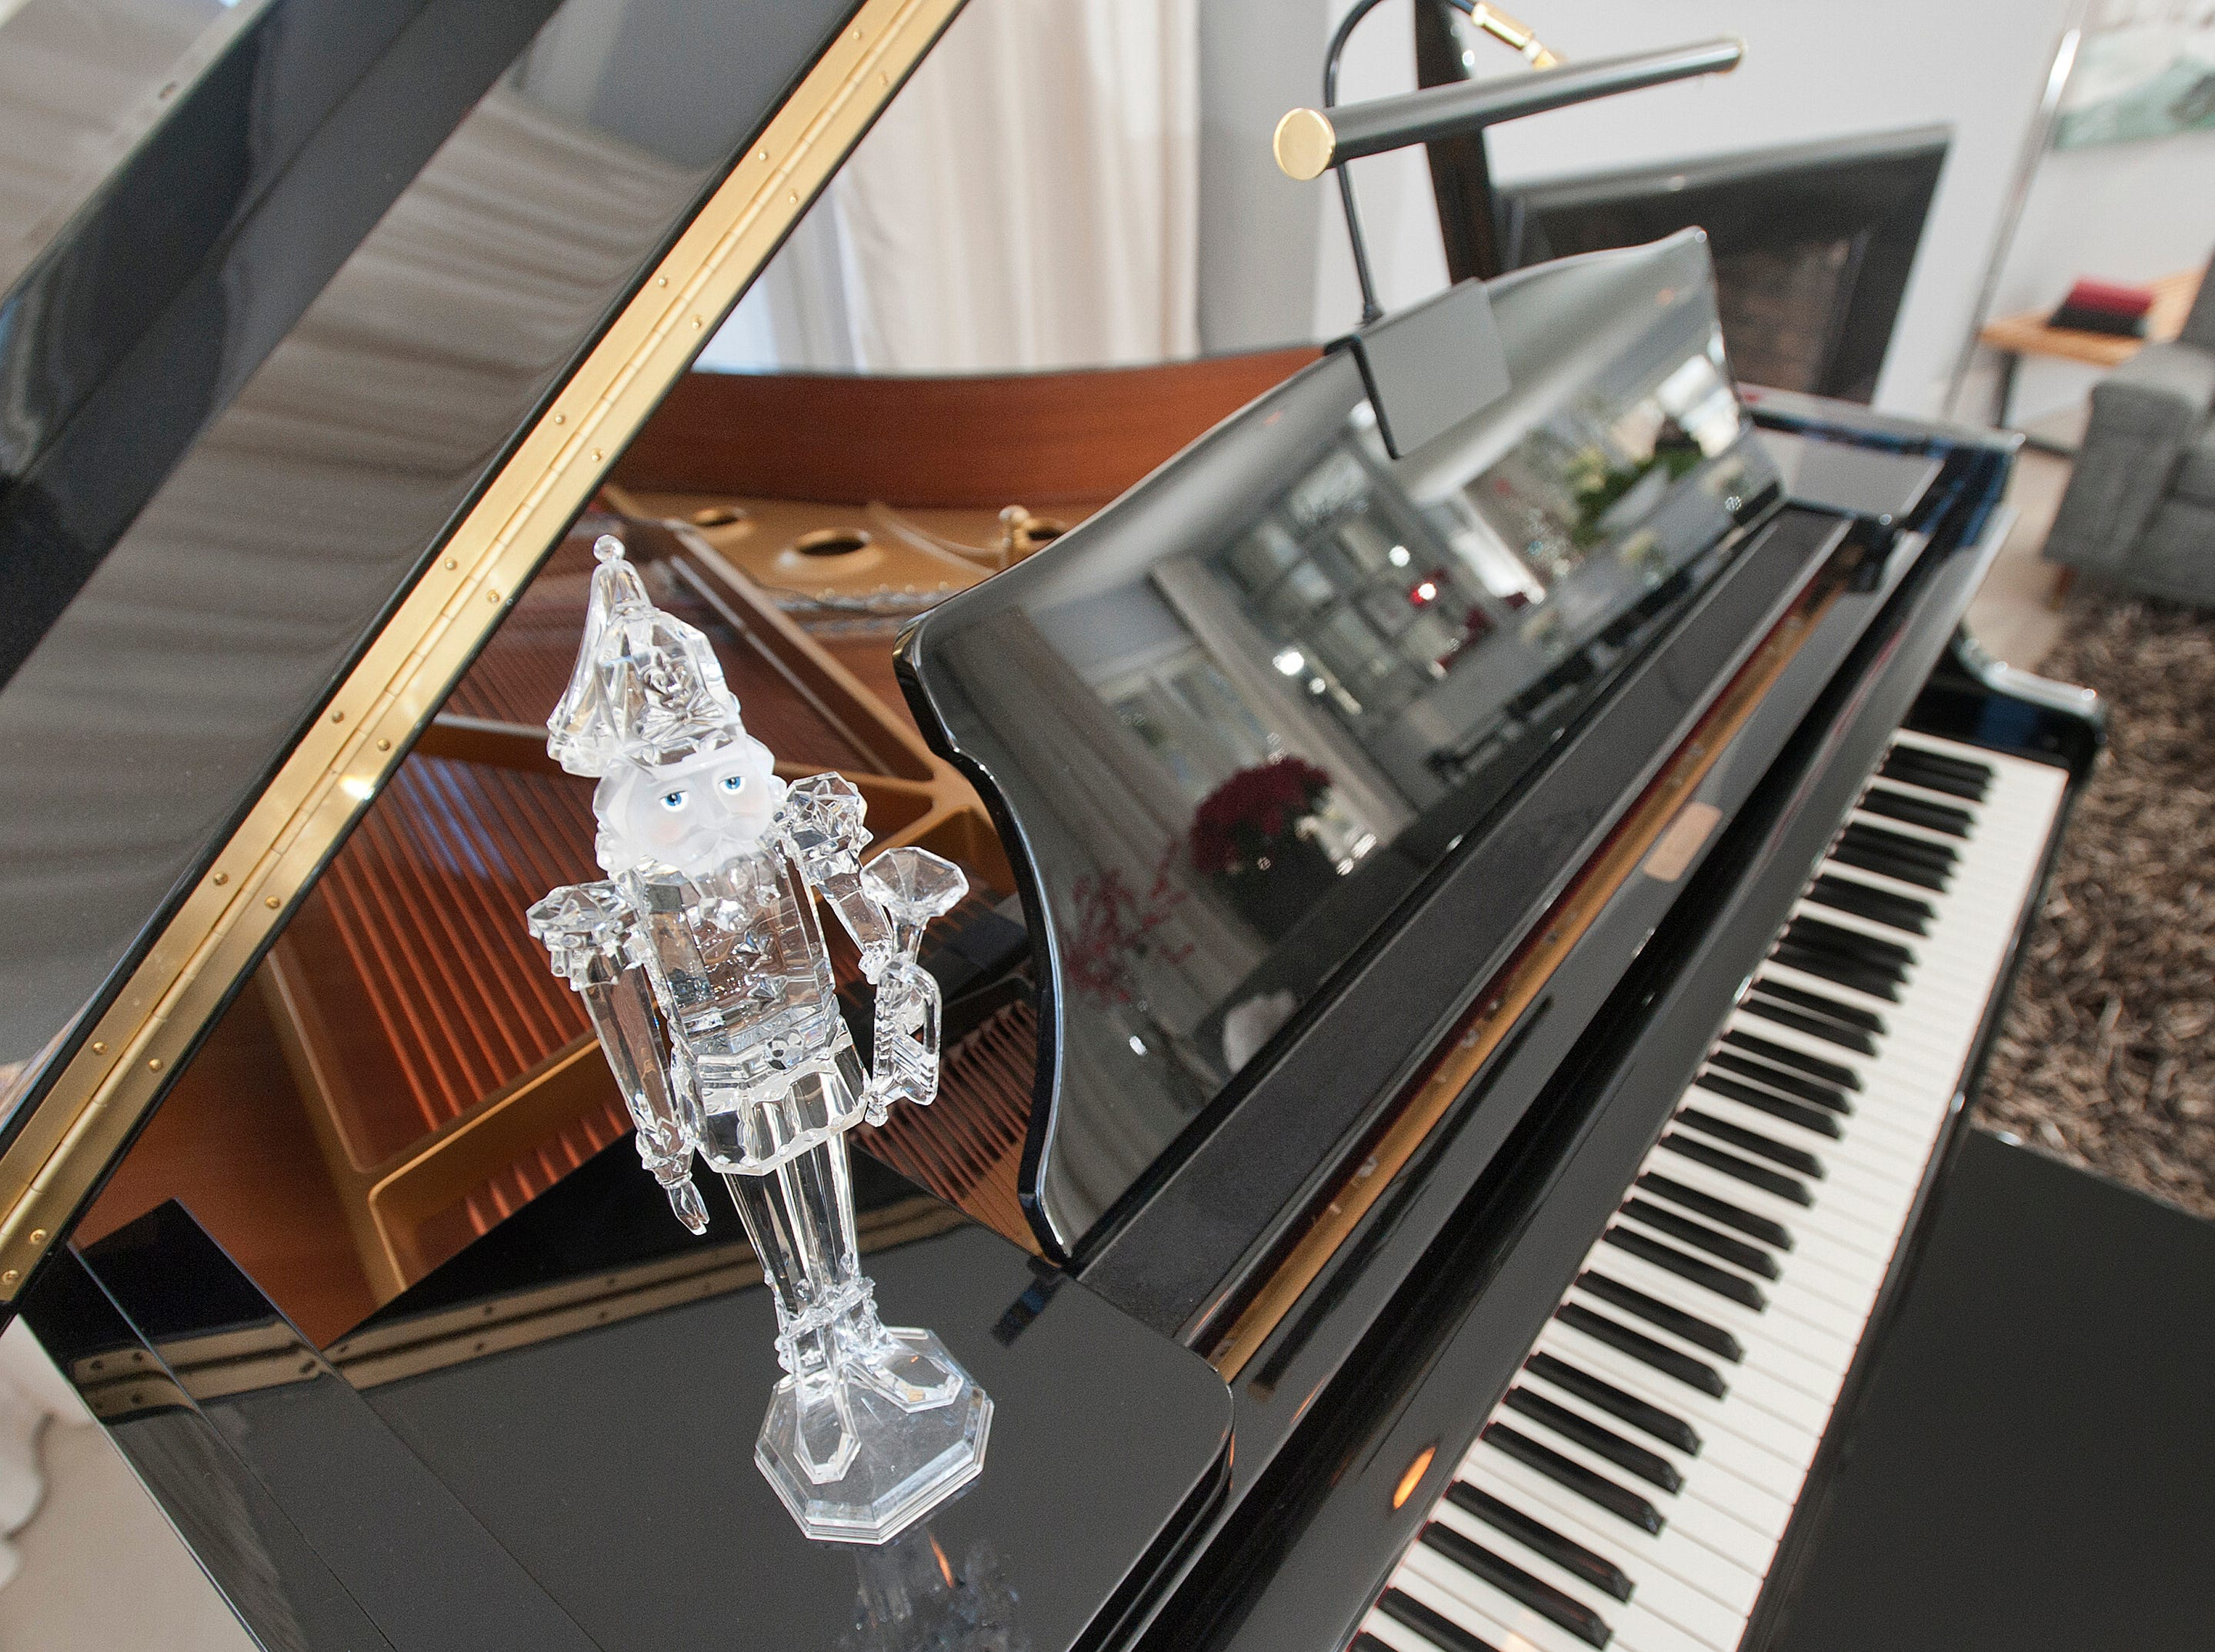 """This acrylic nutcracker called """"Mrs. Claws,"""" sits atop the grand piano in the home's living room.10 December 2018"""